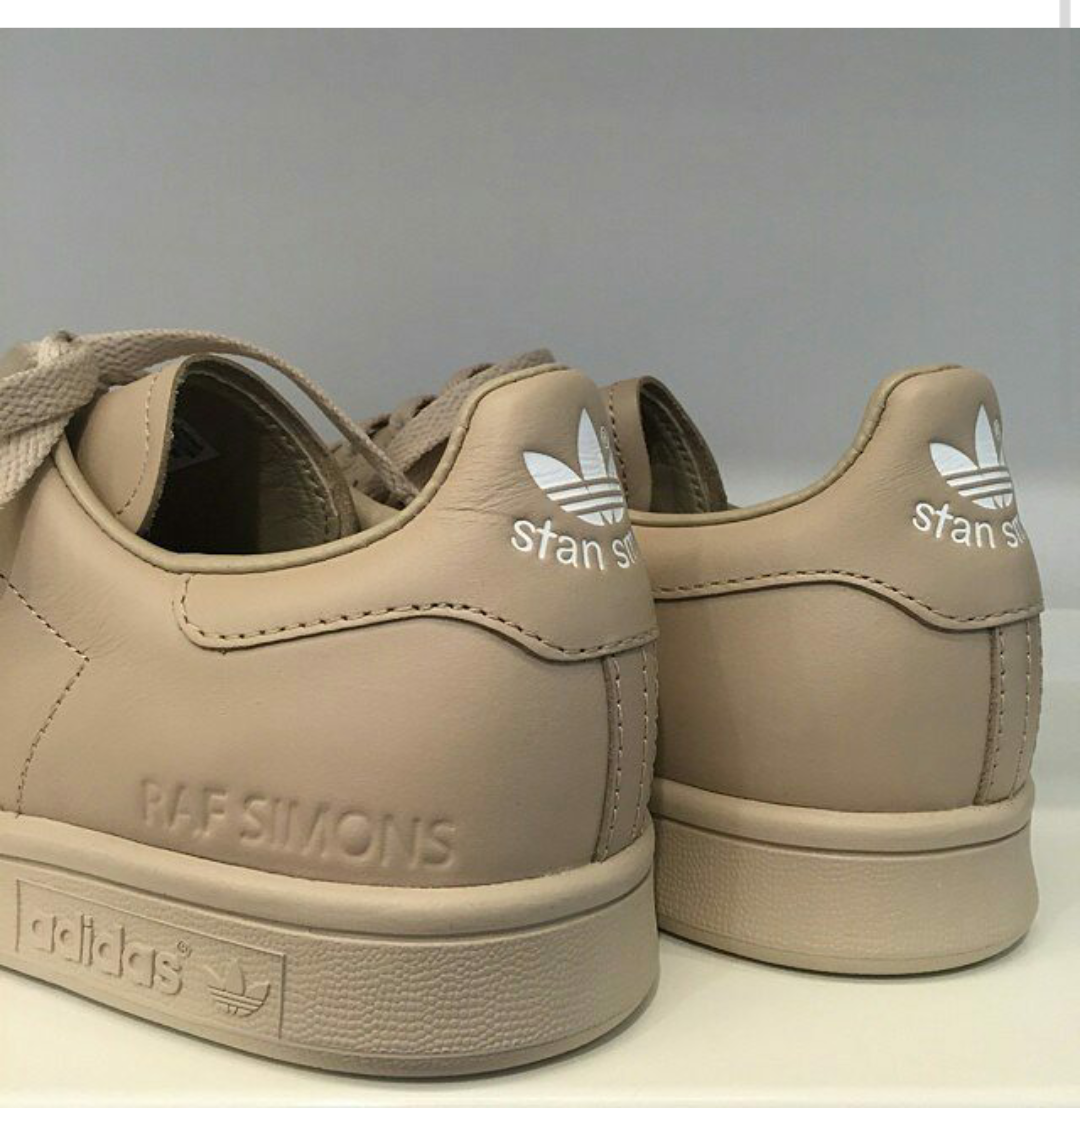 pretty nice 0115b 0d6f7 adidas stan smith tumblr - Google Search